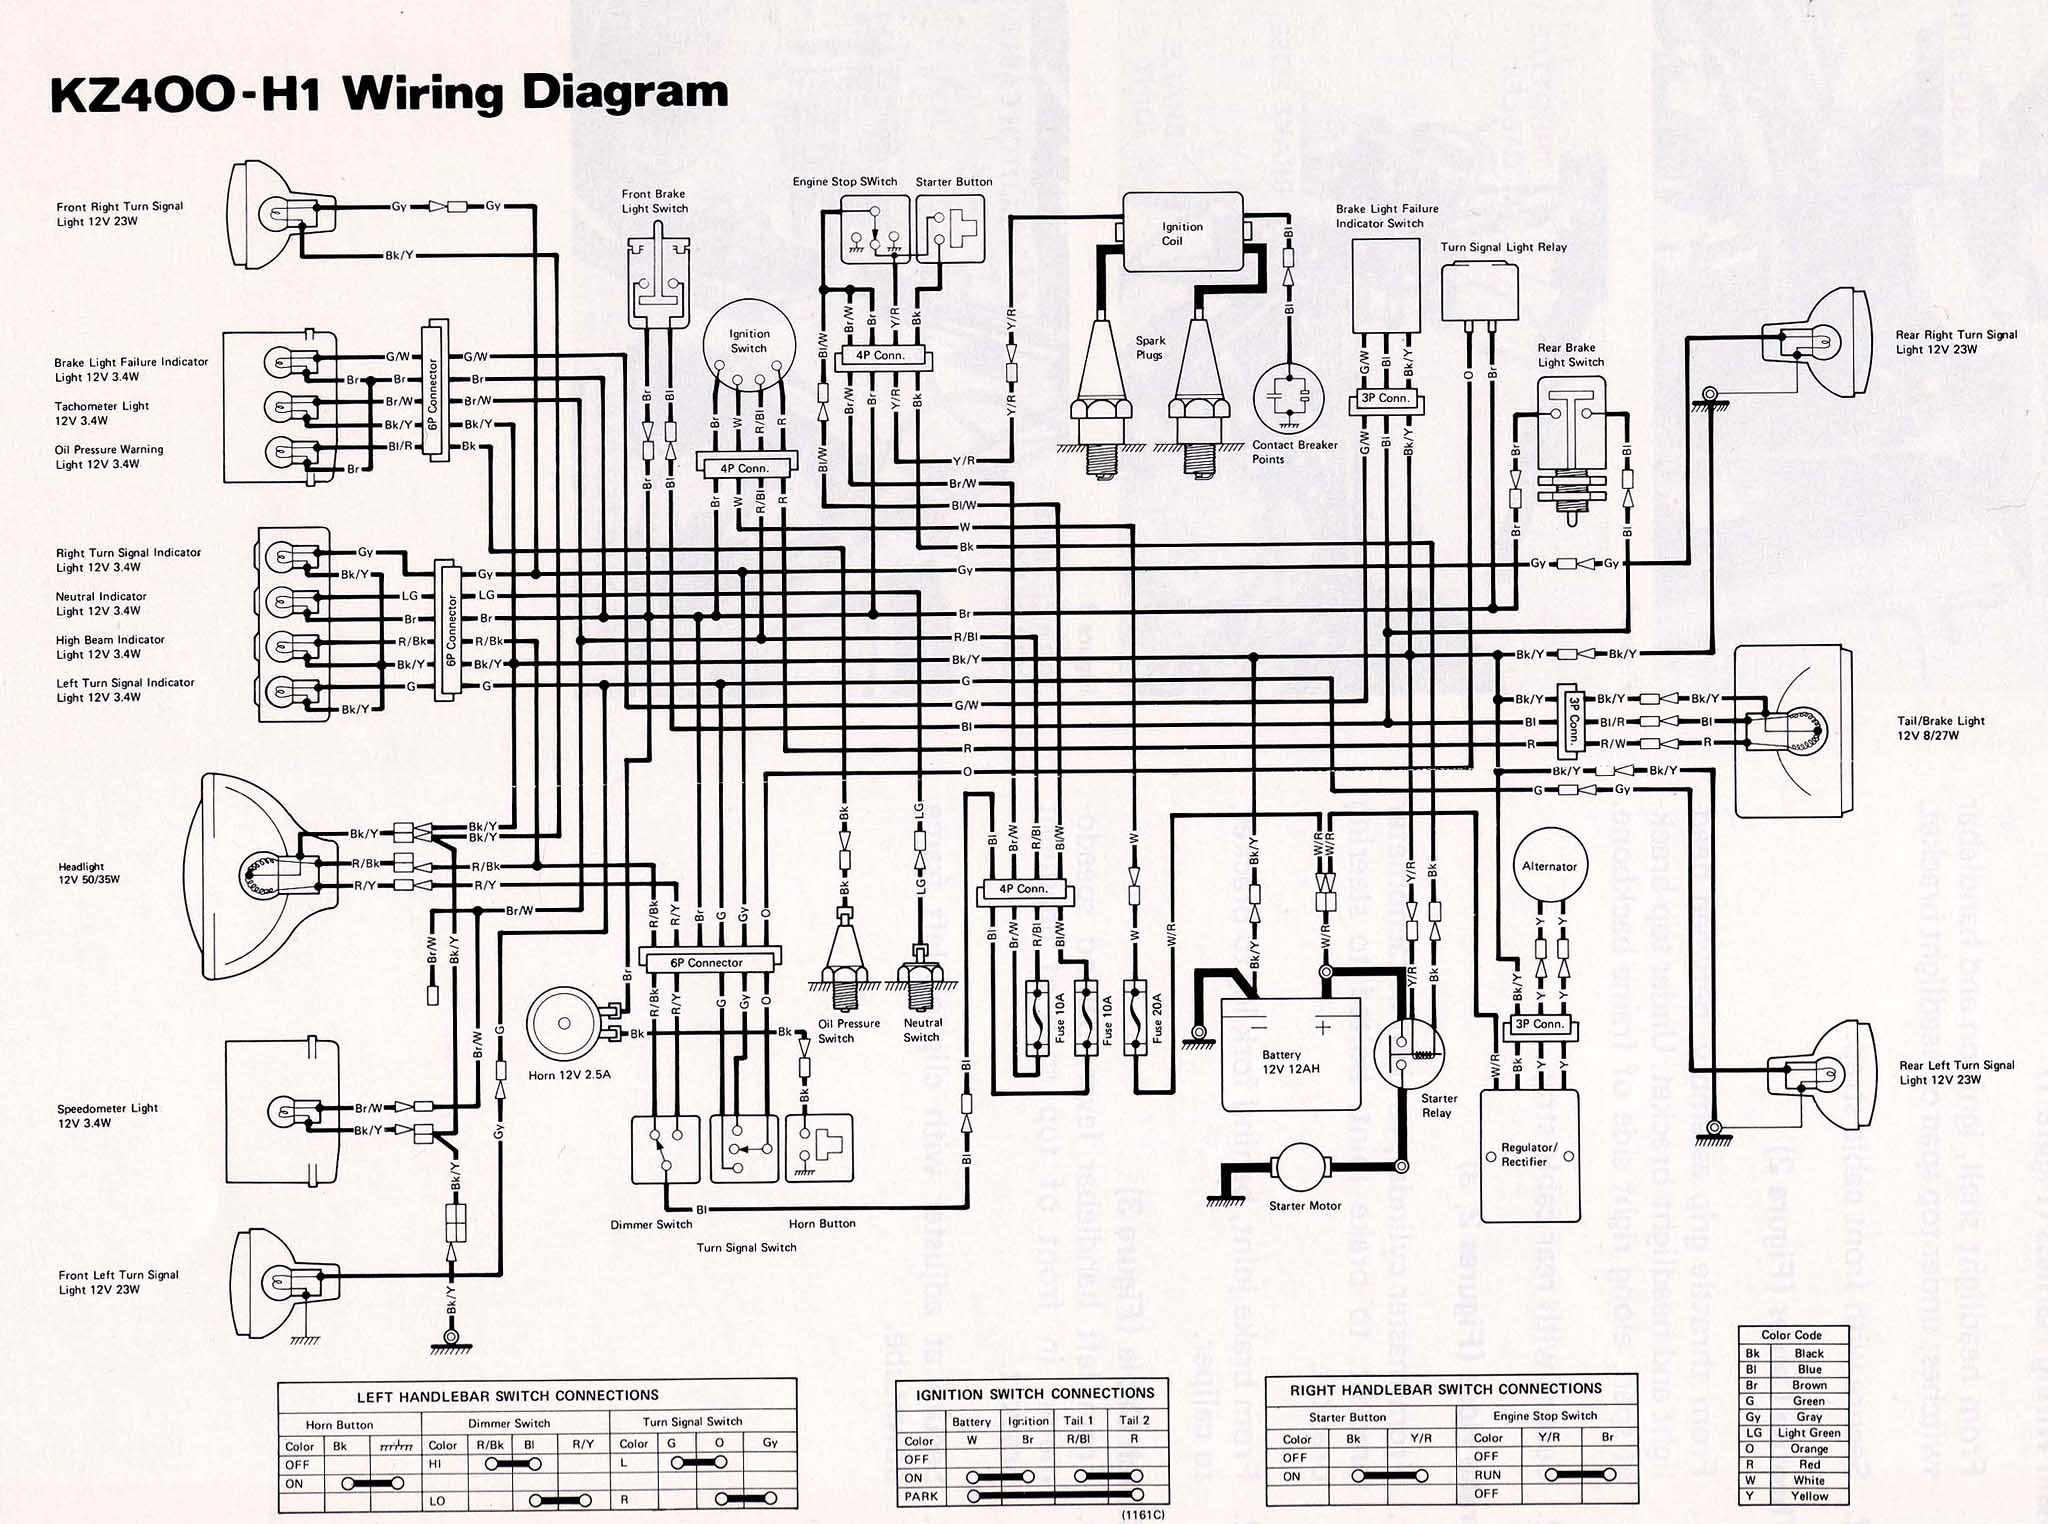 1980 kawasaki 750 ltd wiring diagram